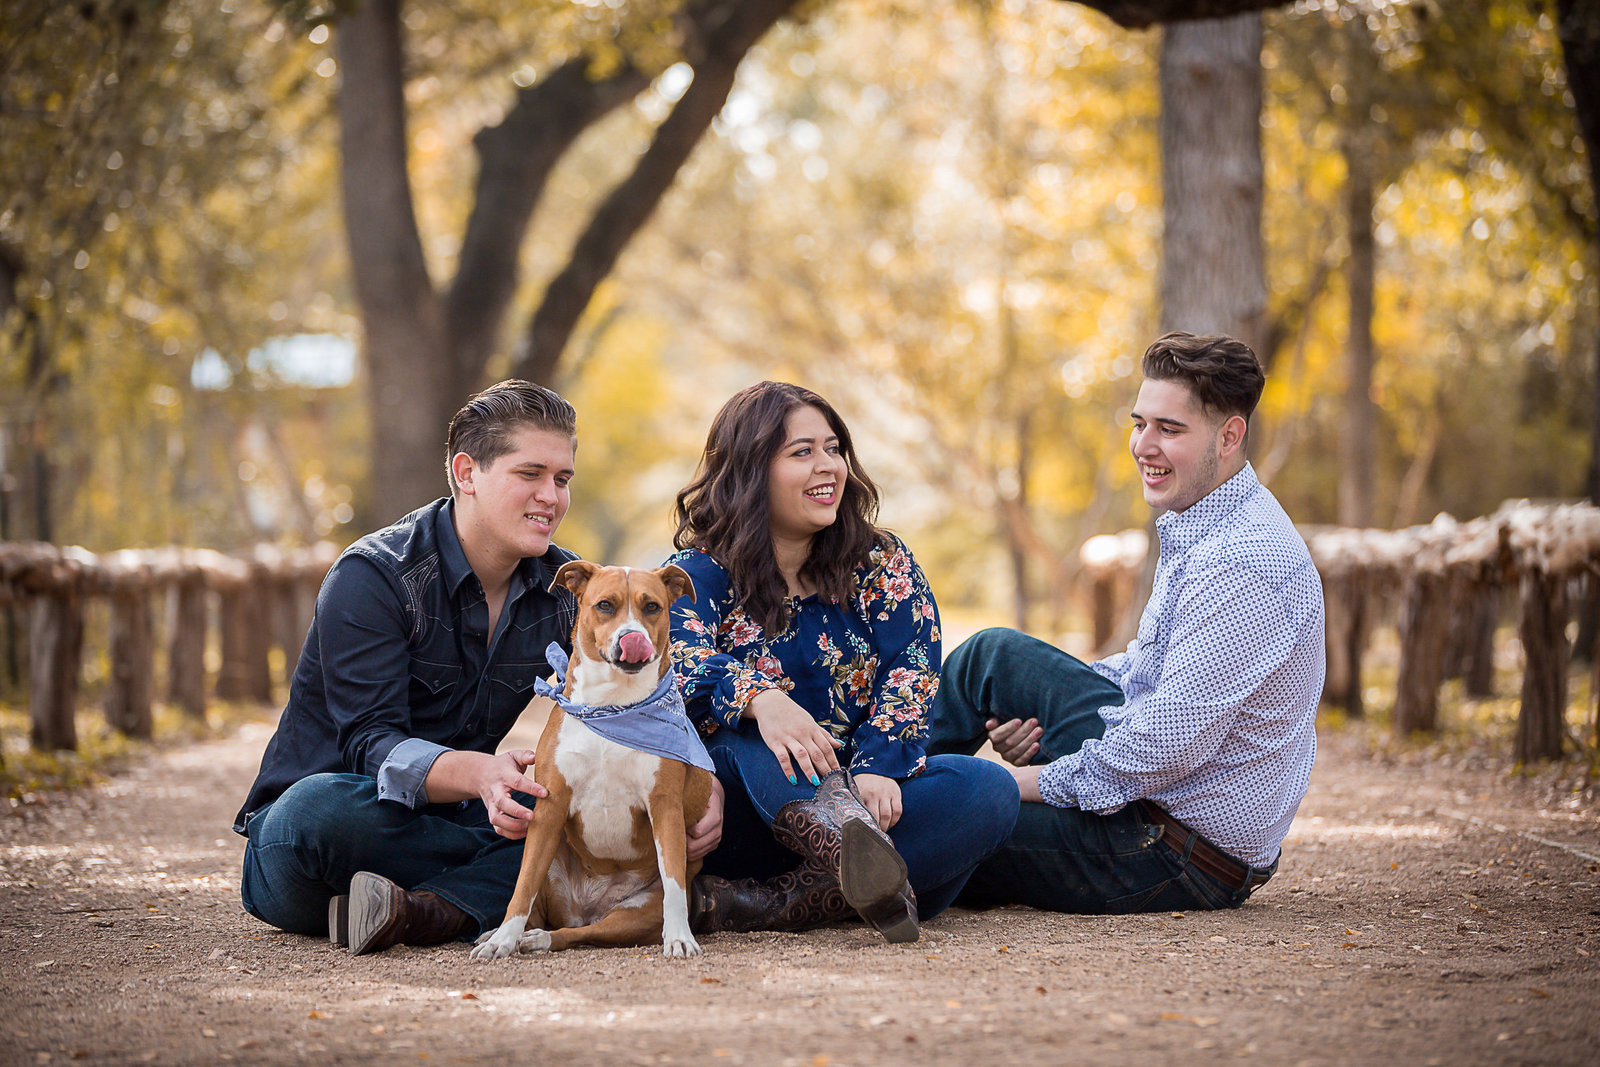 San Antonio family portrait by Kim Arredondo Photography